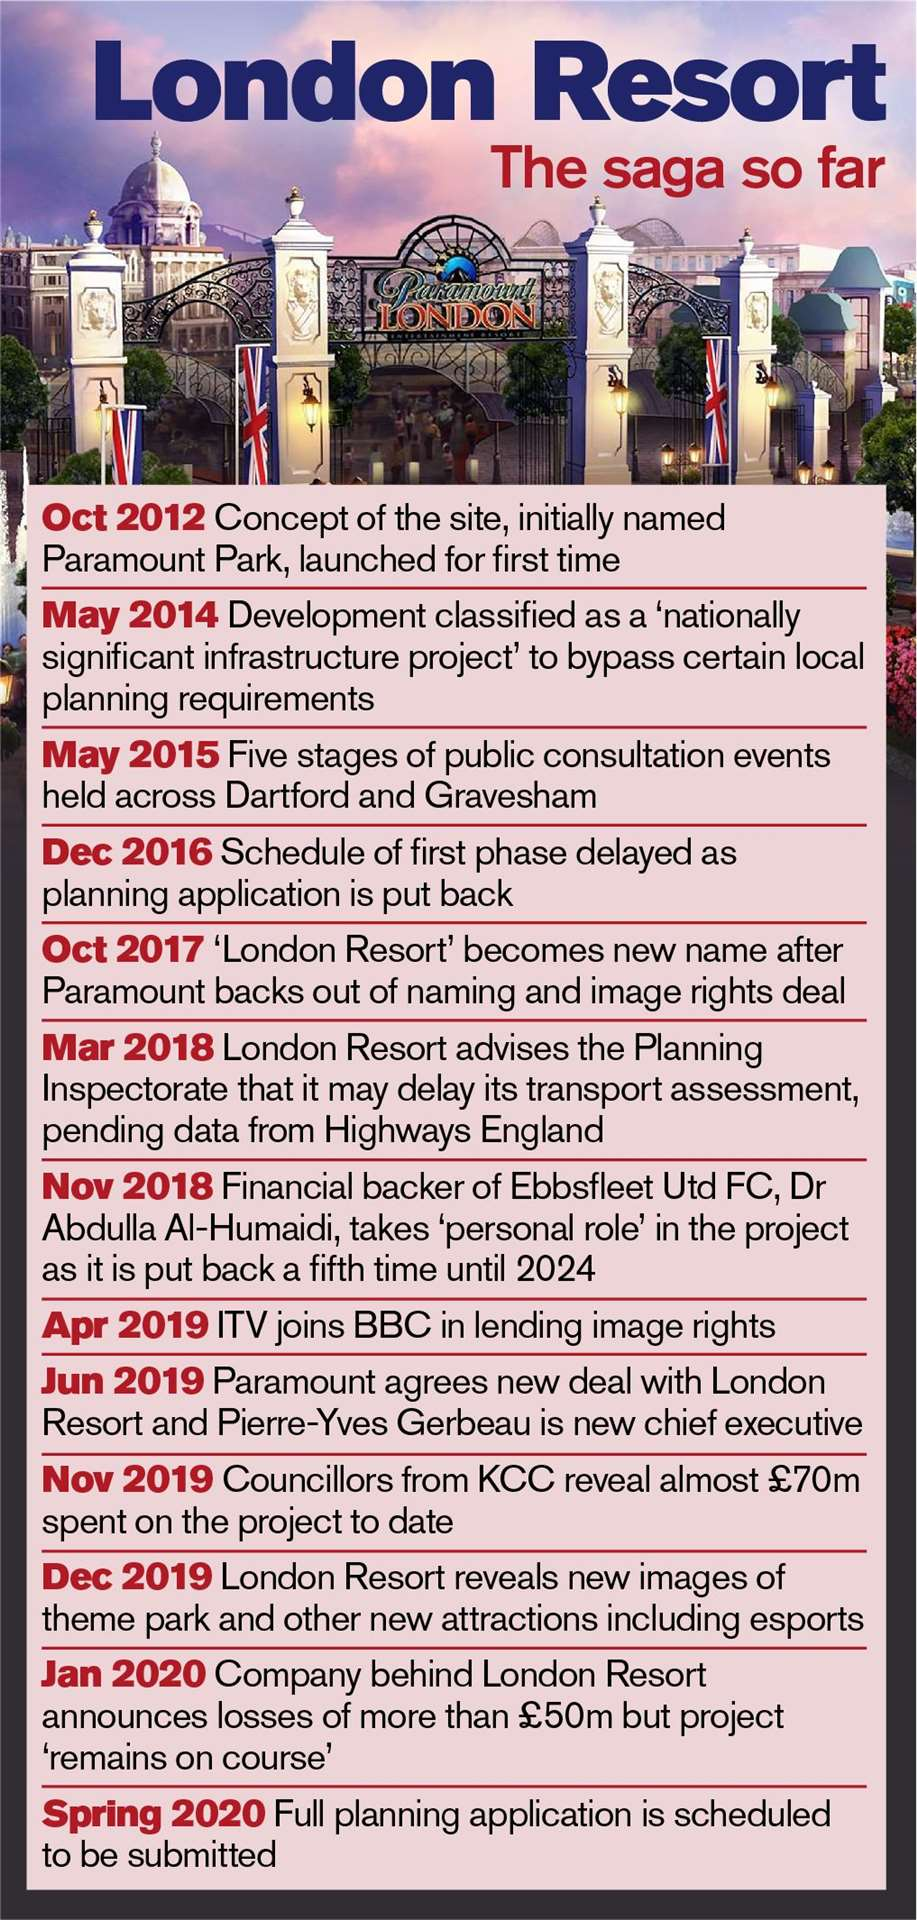 A timeline of developments relating to the London Resort project to date.